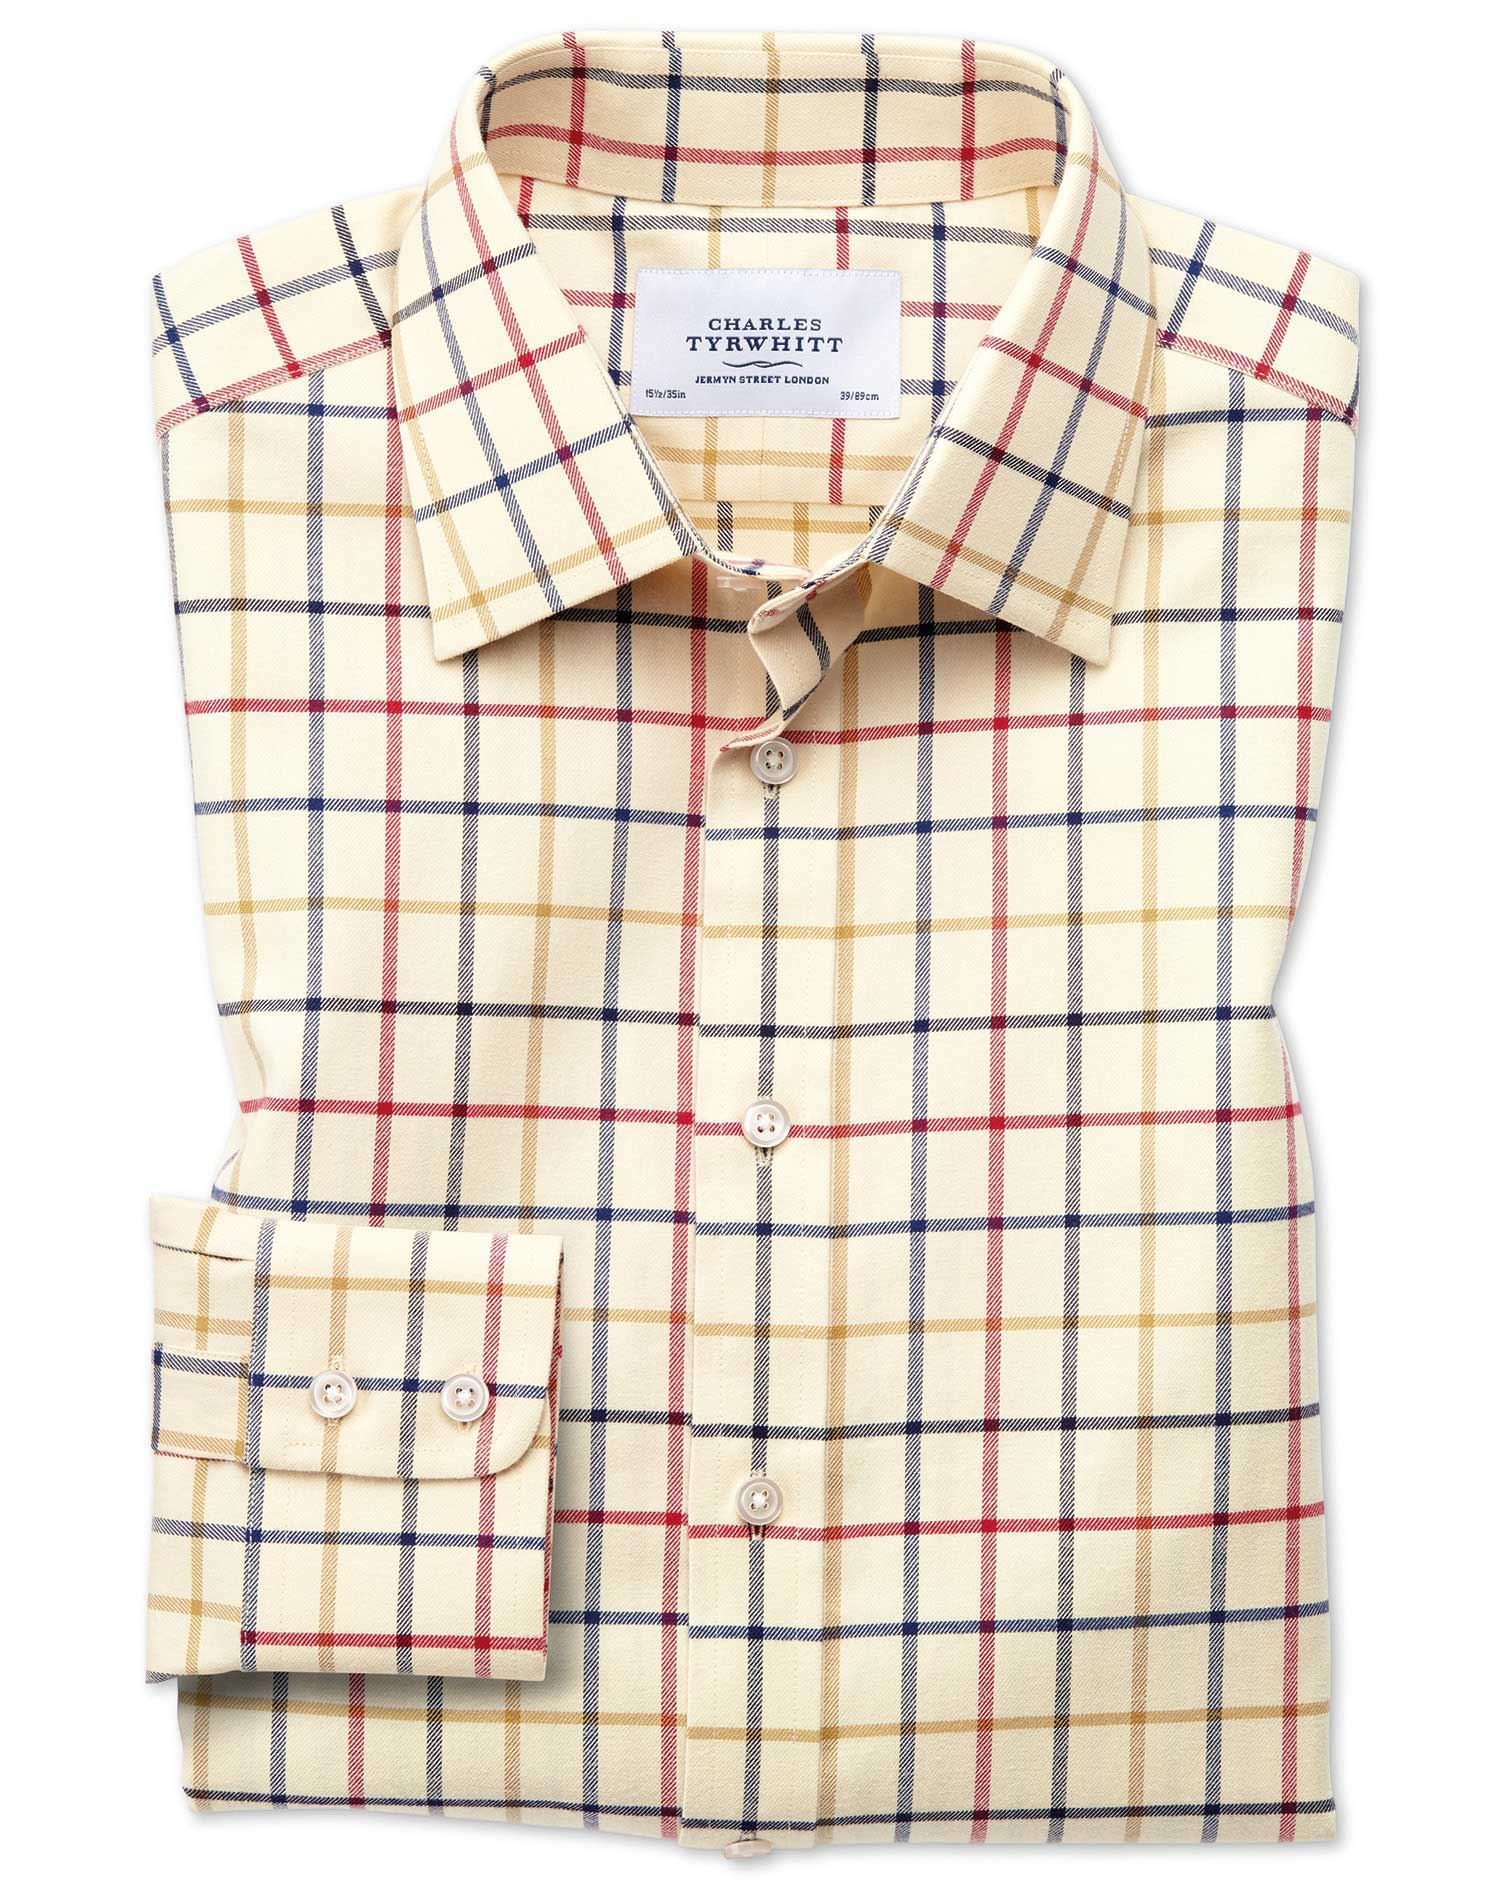 Slim Fit Country Check Red and Blue Cotton Formal Shirt Single Cuff Size 16/35 by Charles Tyrwhitt